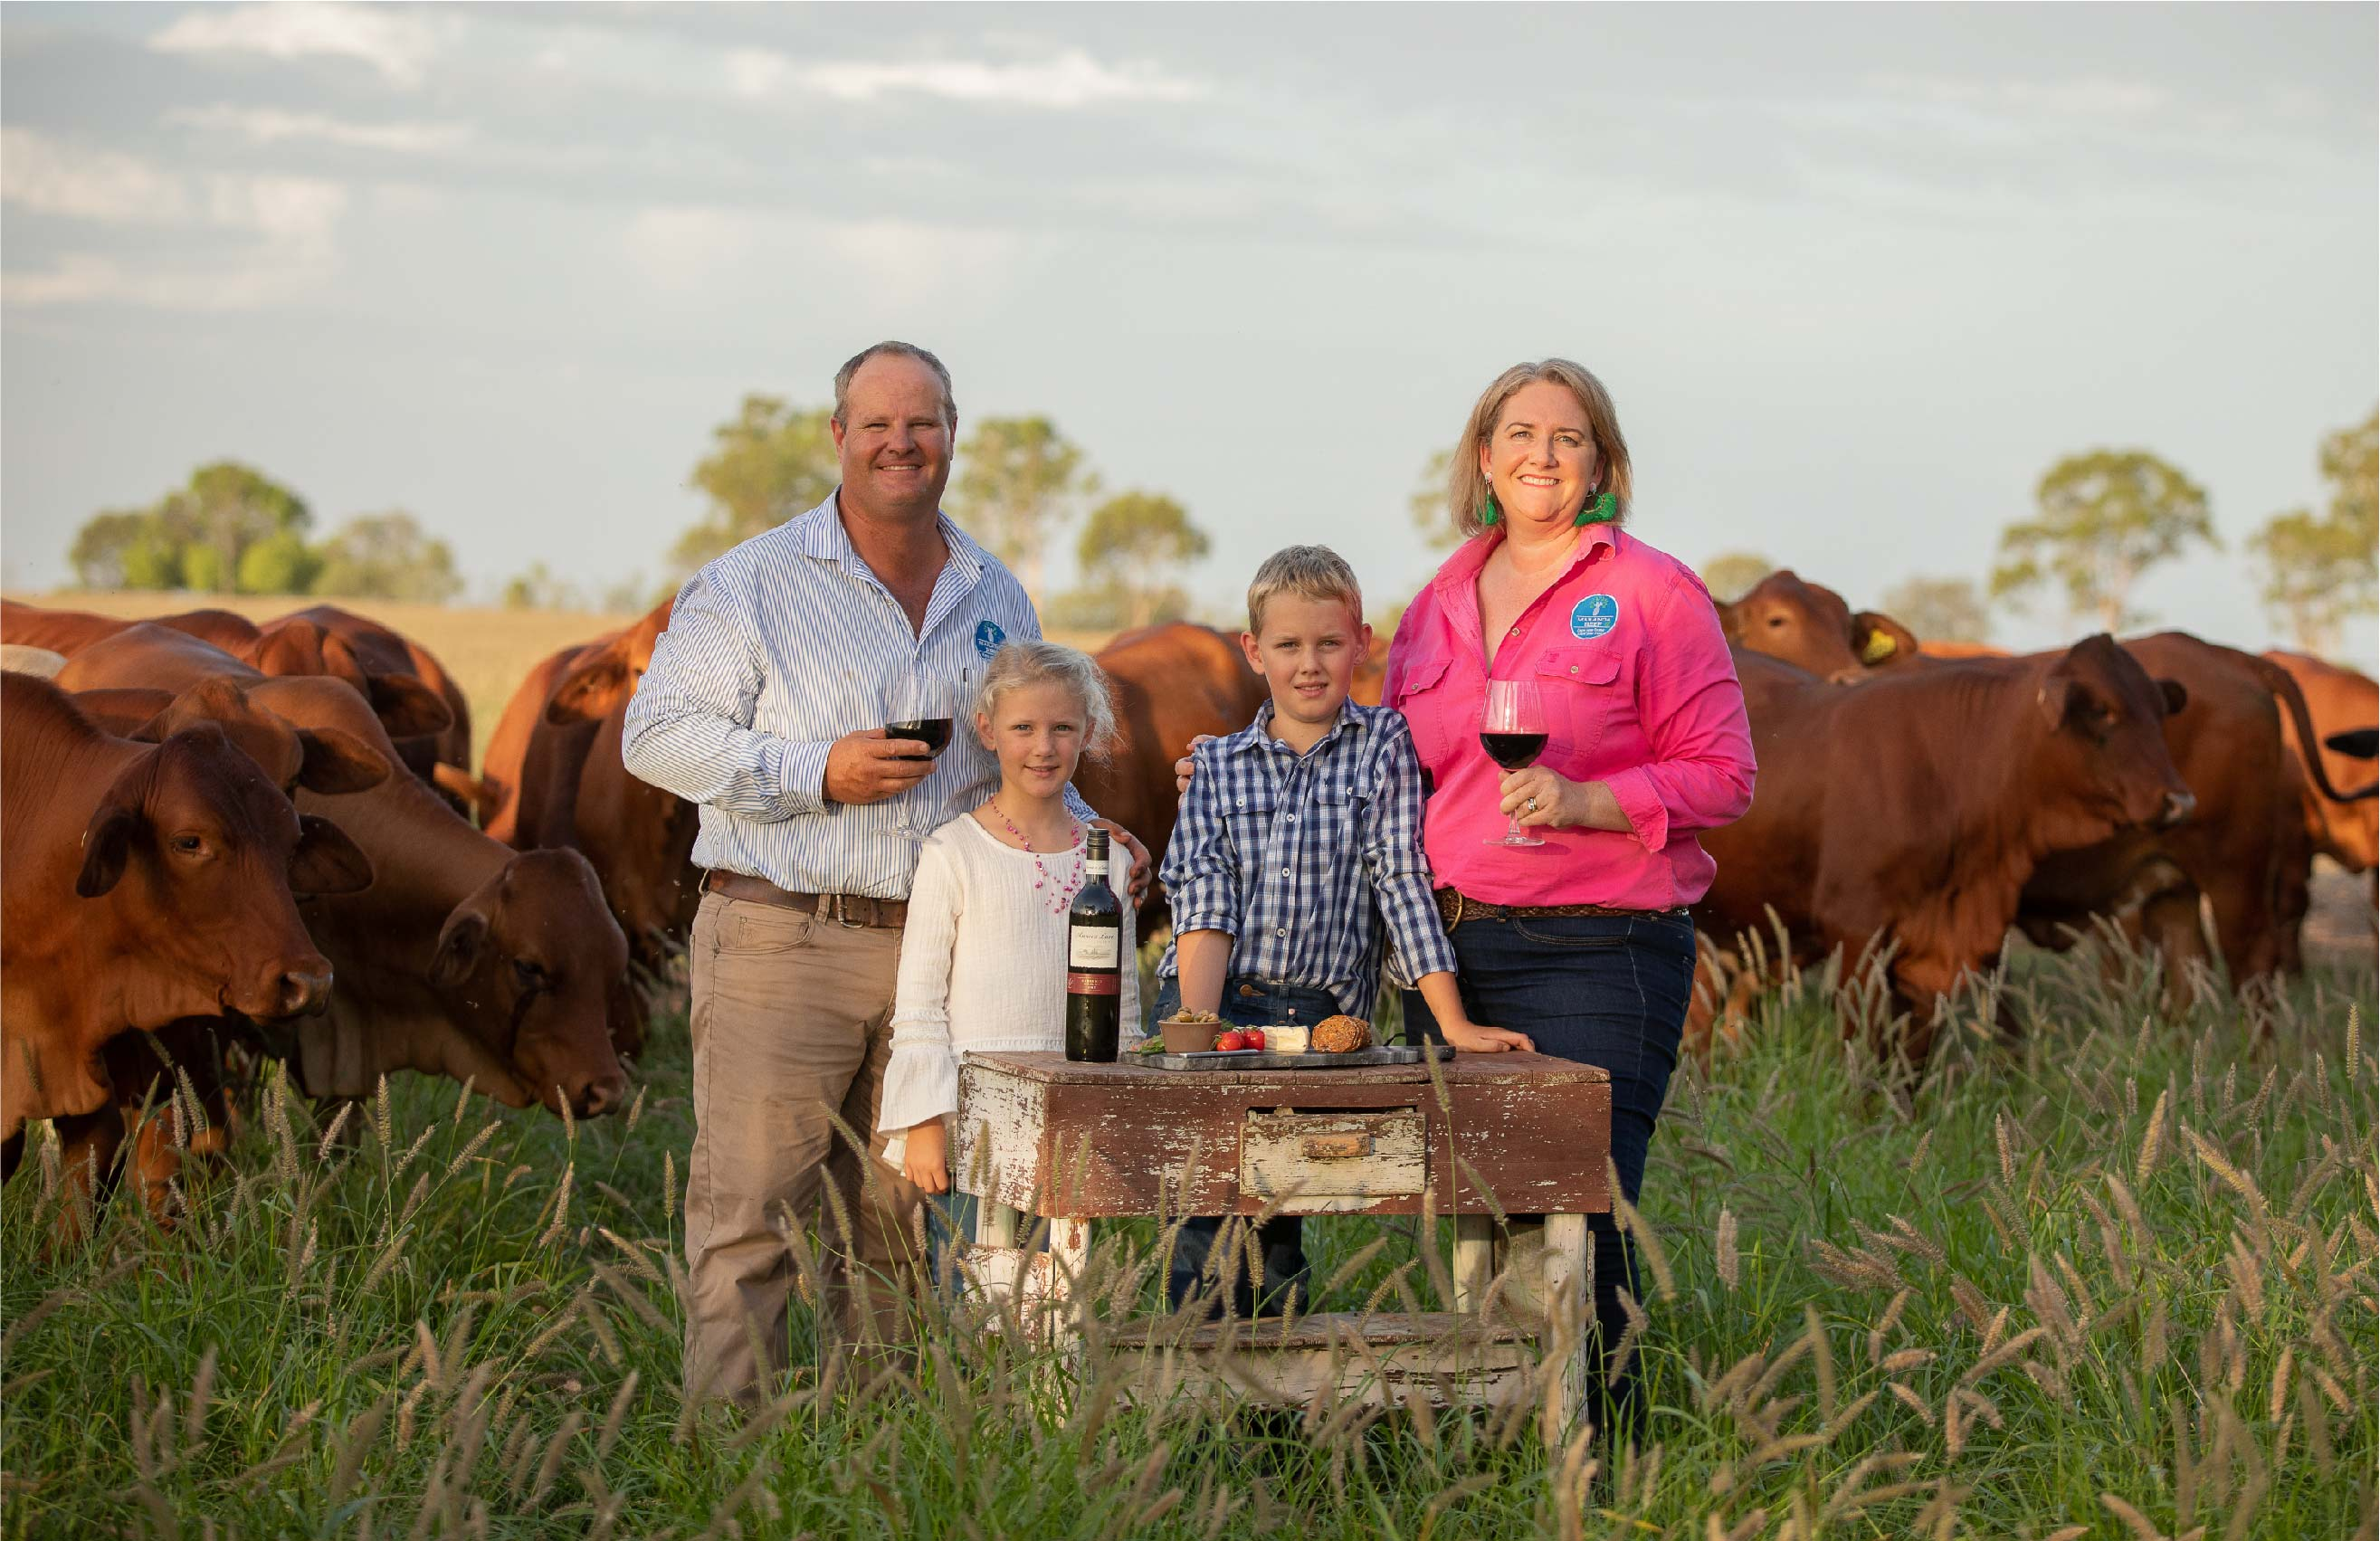 Maranoa Beef - Our Story